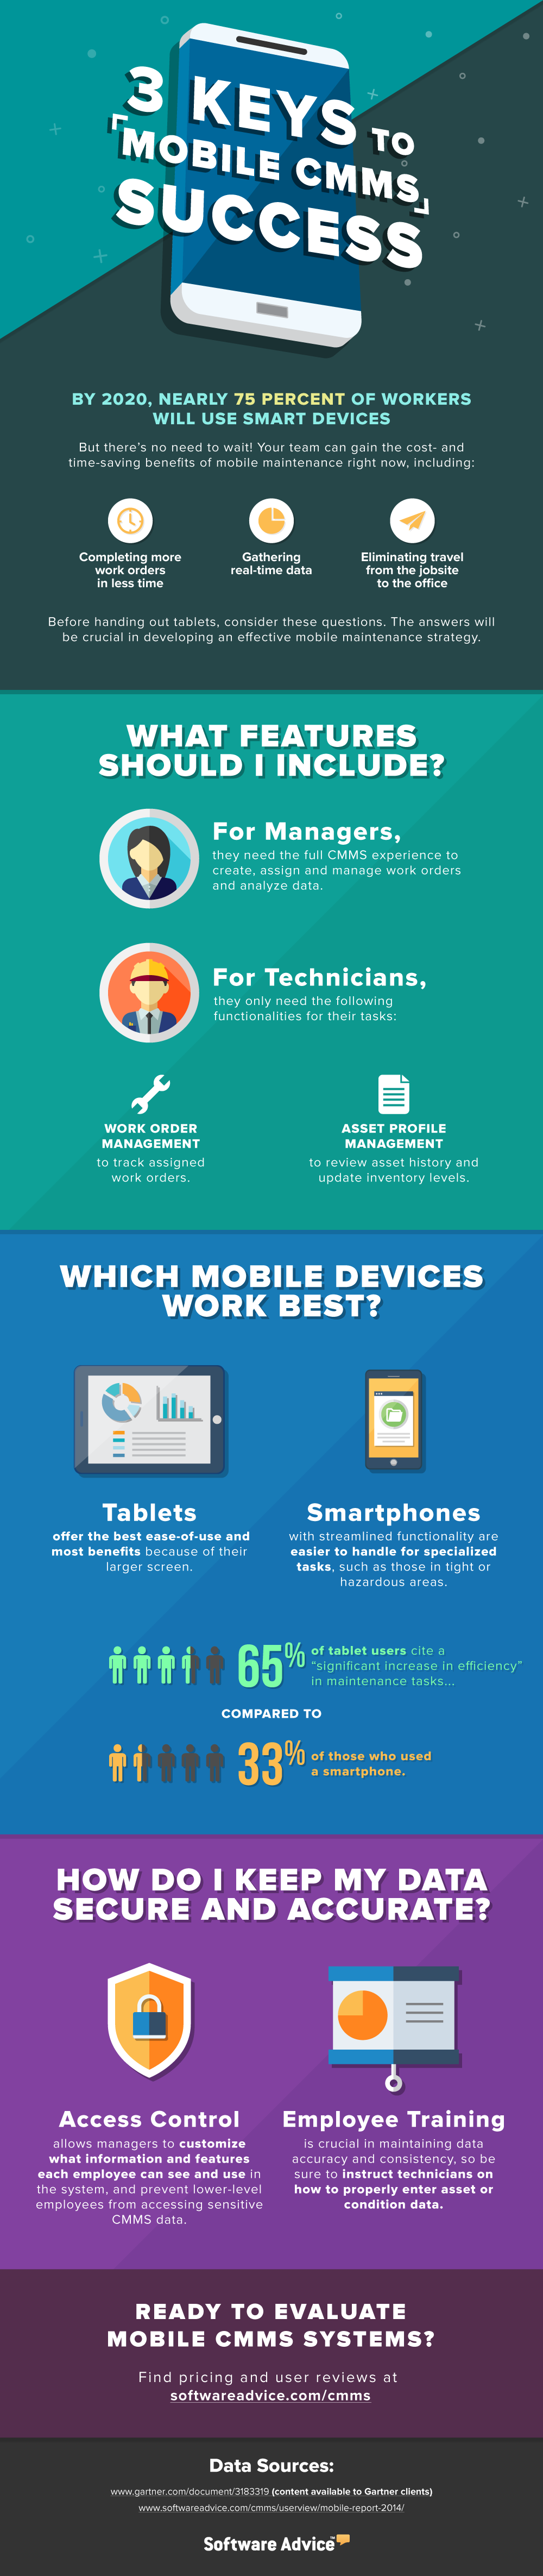 Mobile CMMS Success Infographic